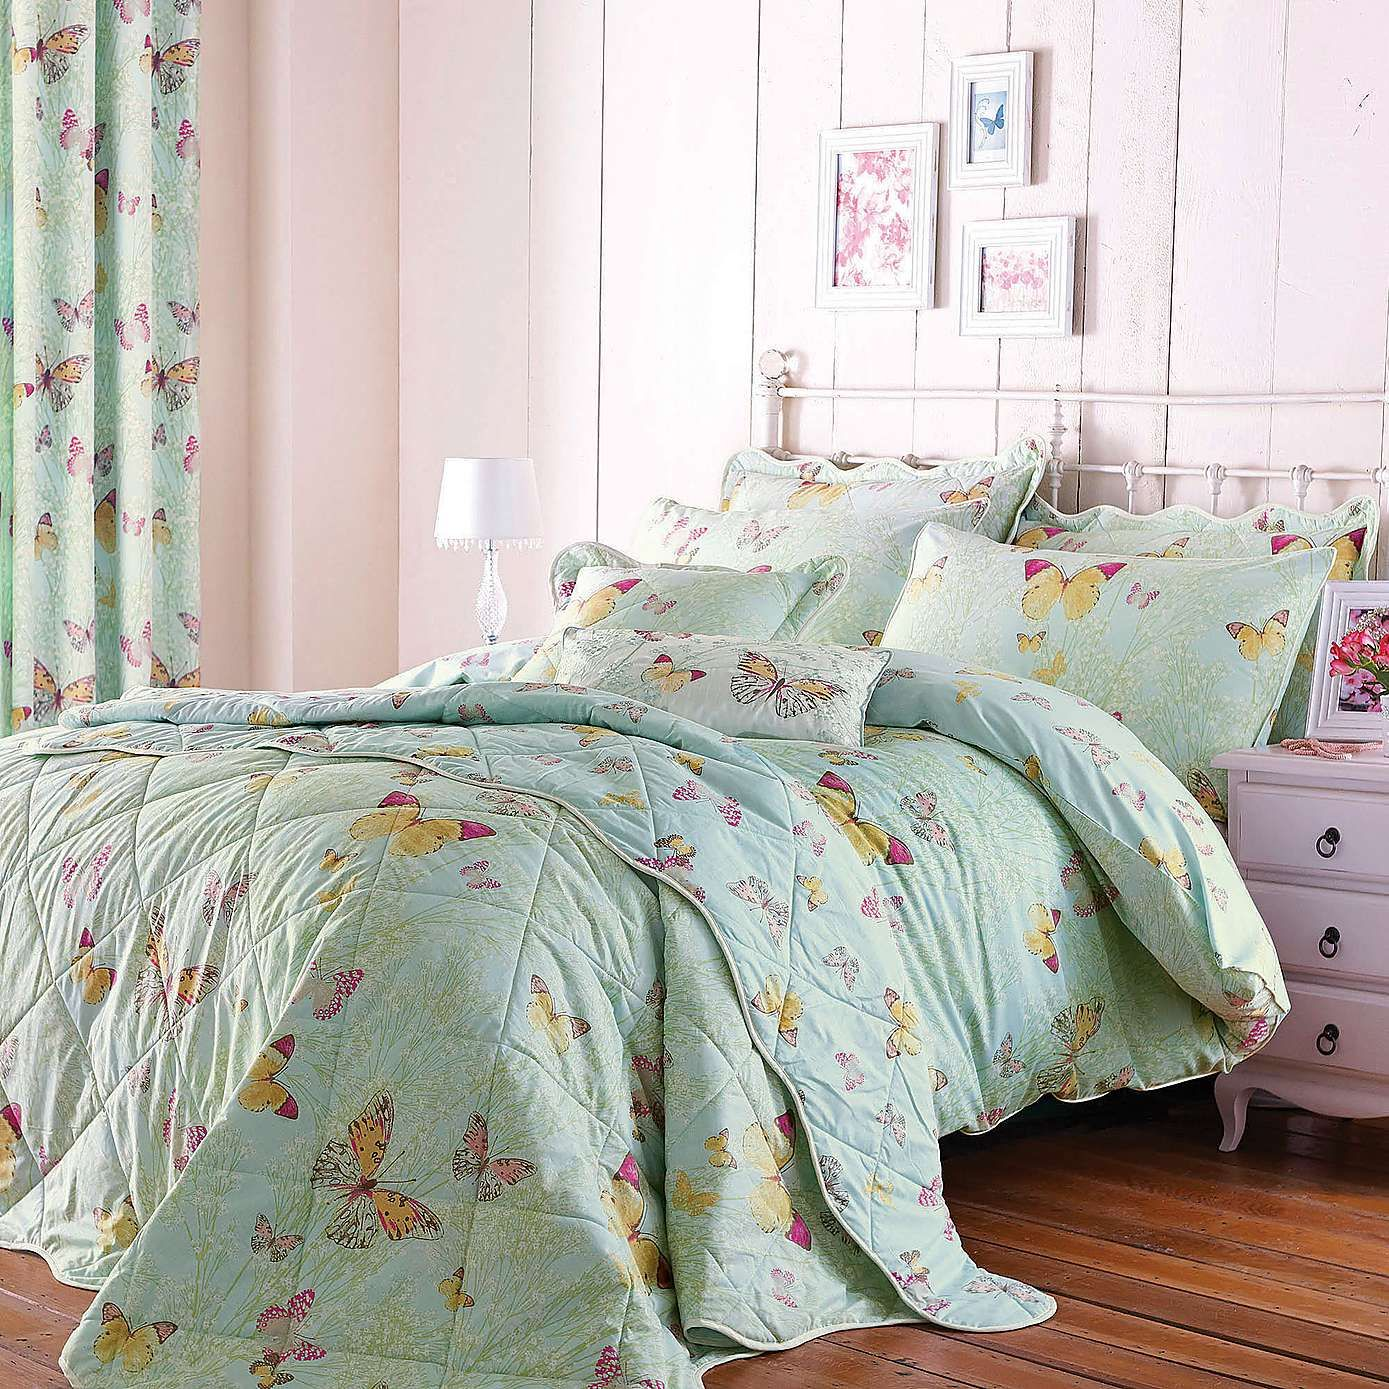 Bedroom Sets Wooden Bedroom Lighting Dunelm Back Bedroom Chairs Cool One Bedroom Apartment Designs: Eau De Nil Botanica Butterfly Duvet Cover Set